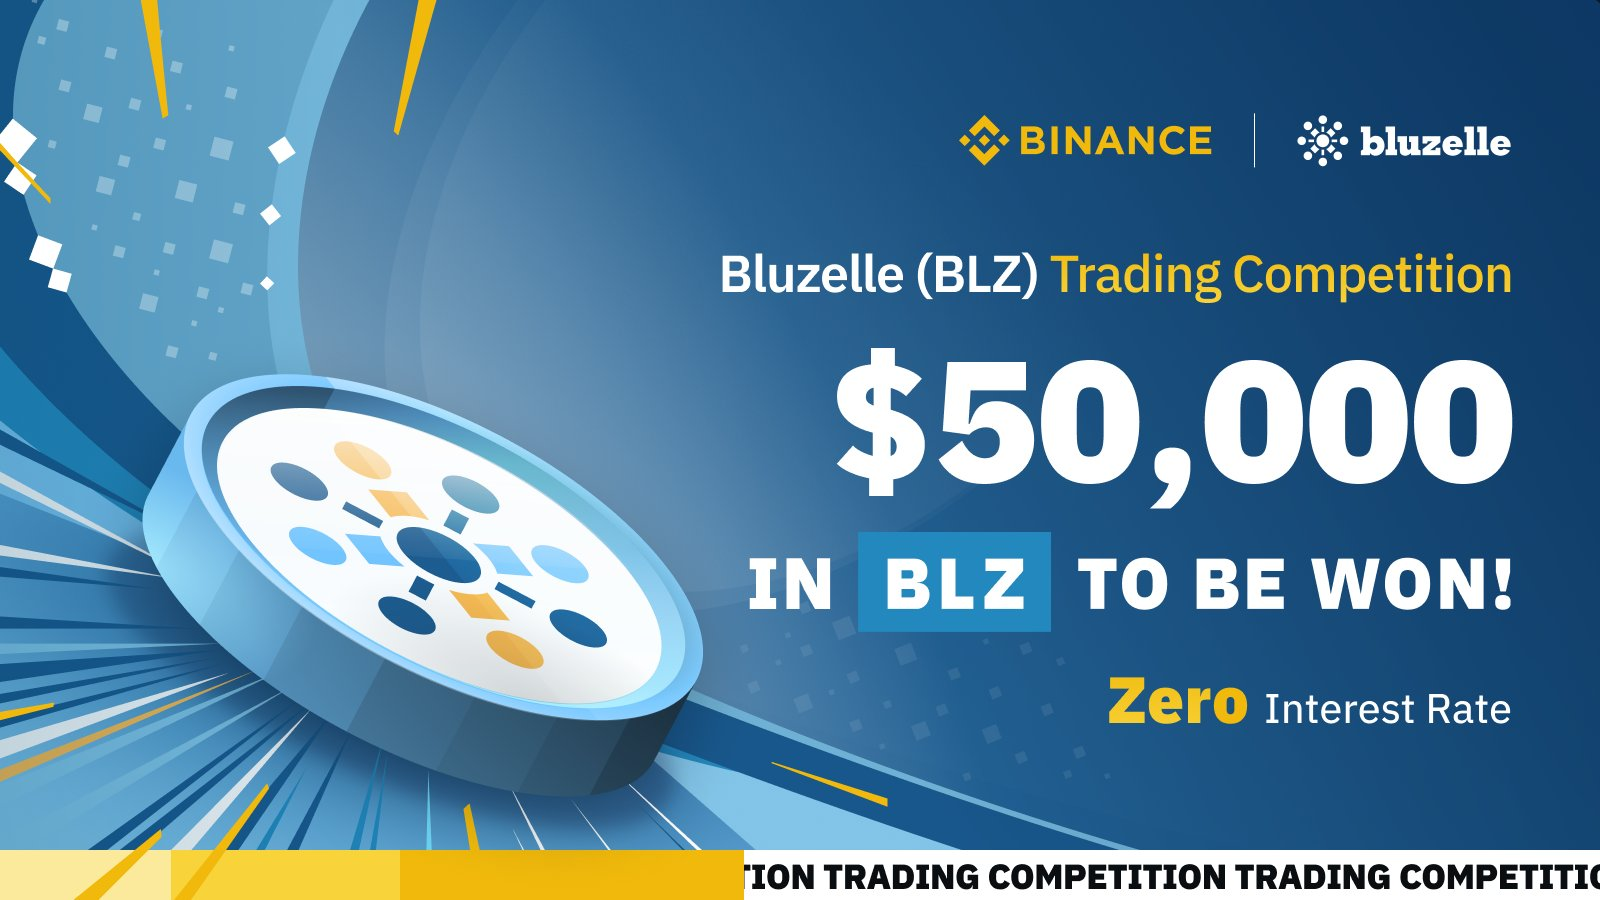 Bluzelle x Binance Trading Competition is ON! $50,000 worth of BLZ tokens to be won